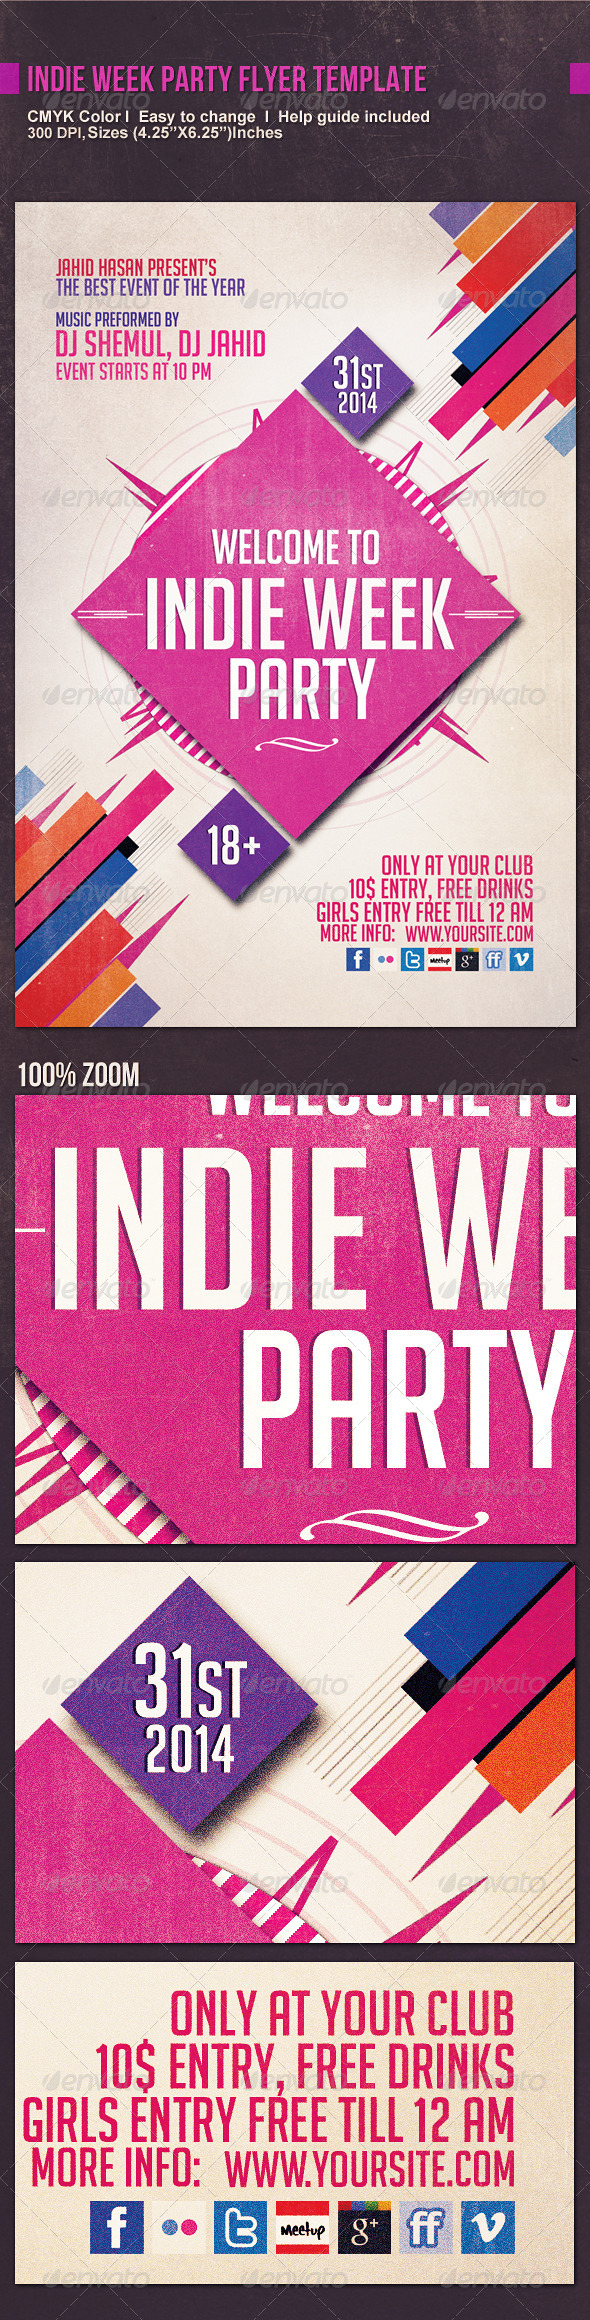 Indie Week Party Flyer Template - Clubs & Parties Events